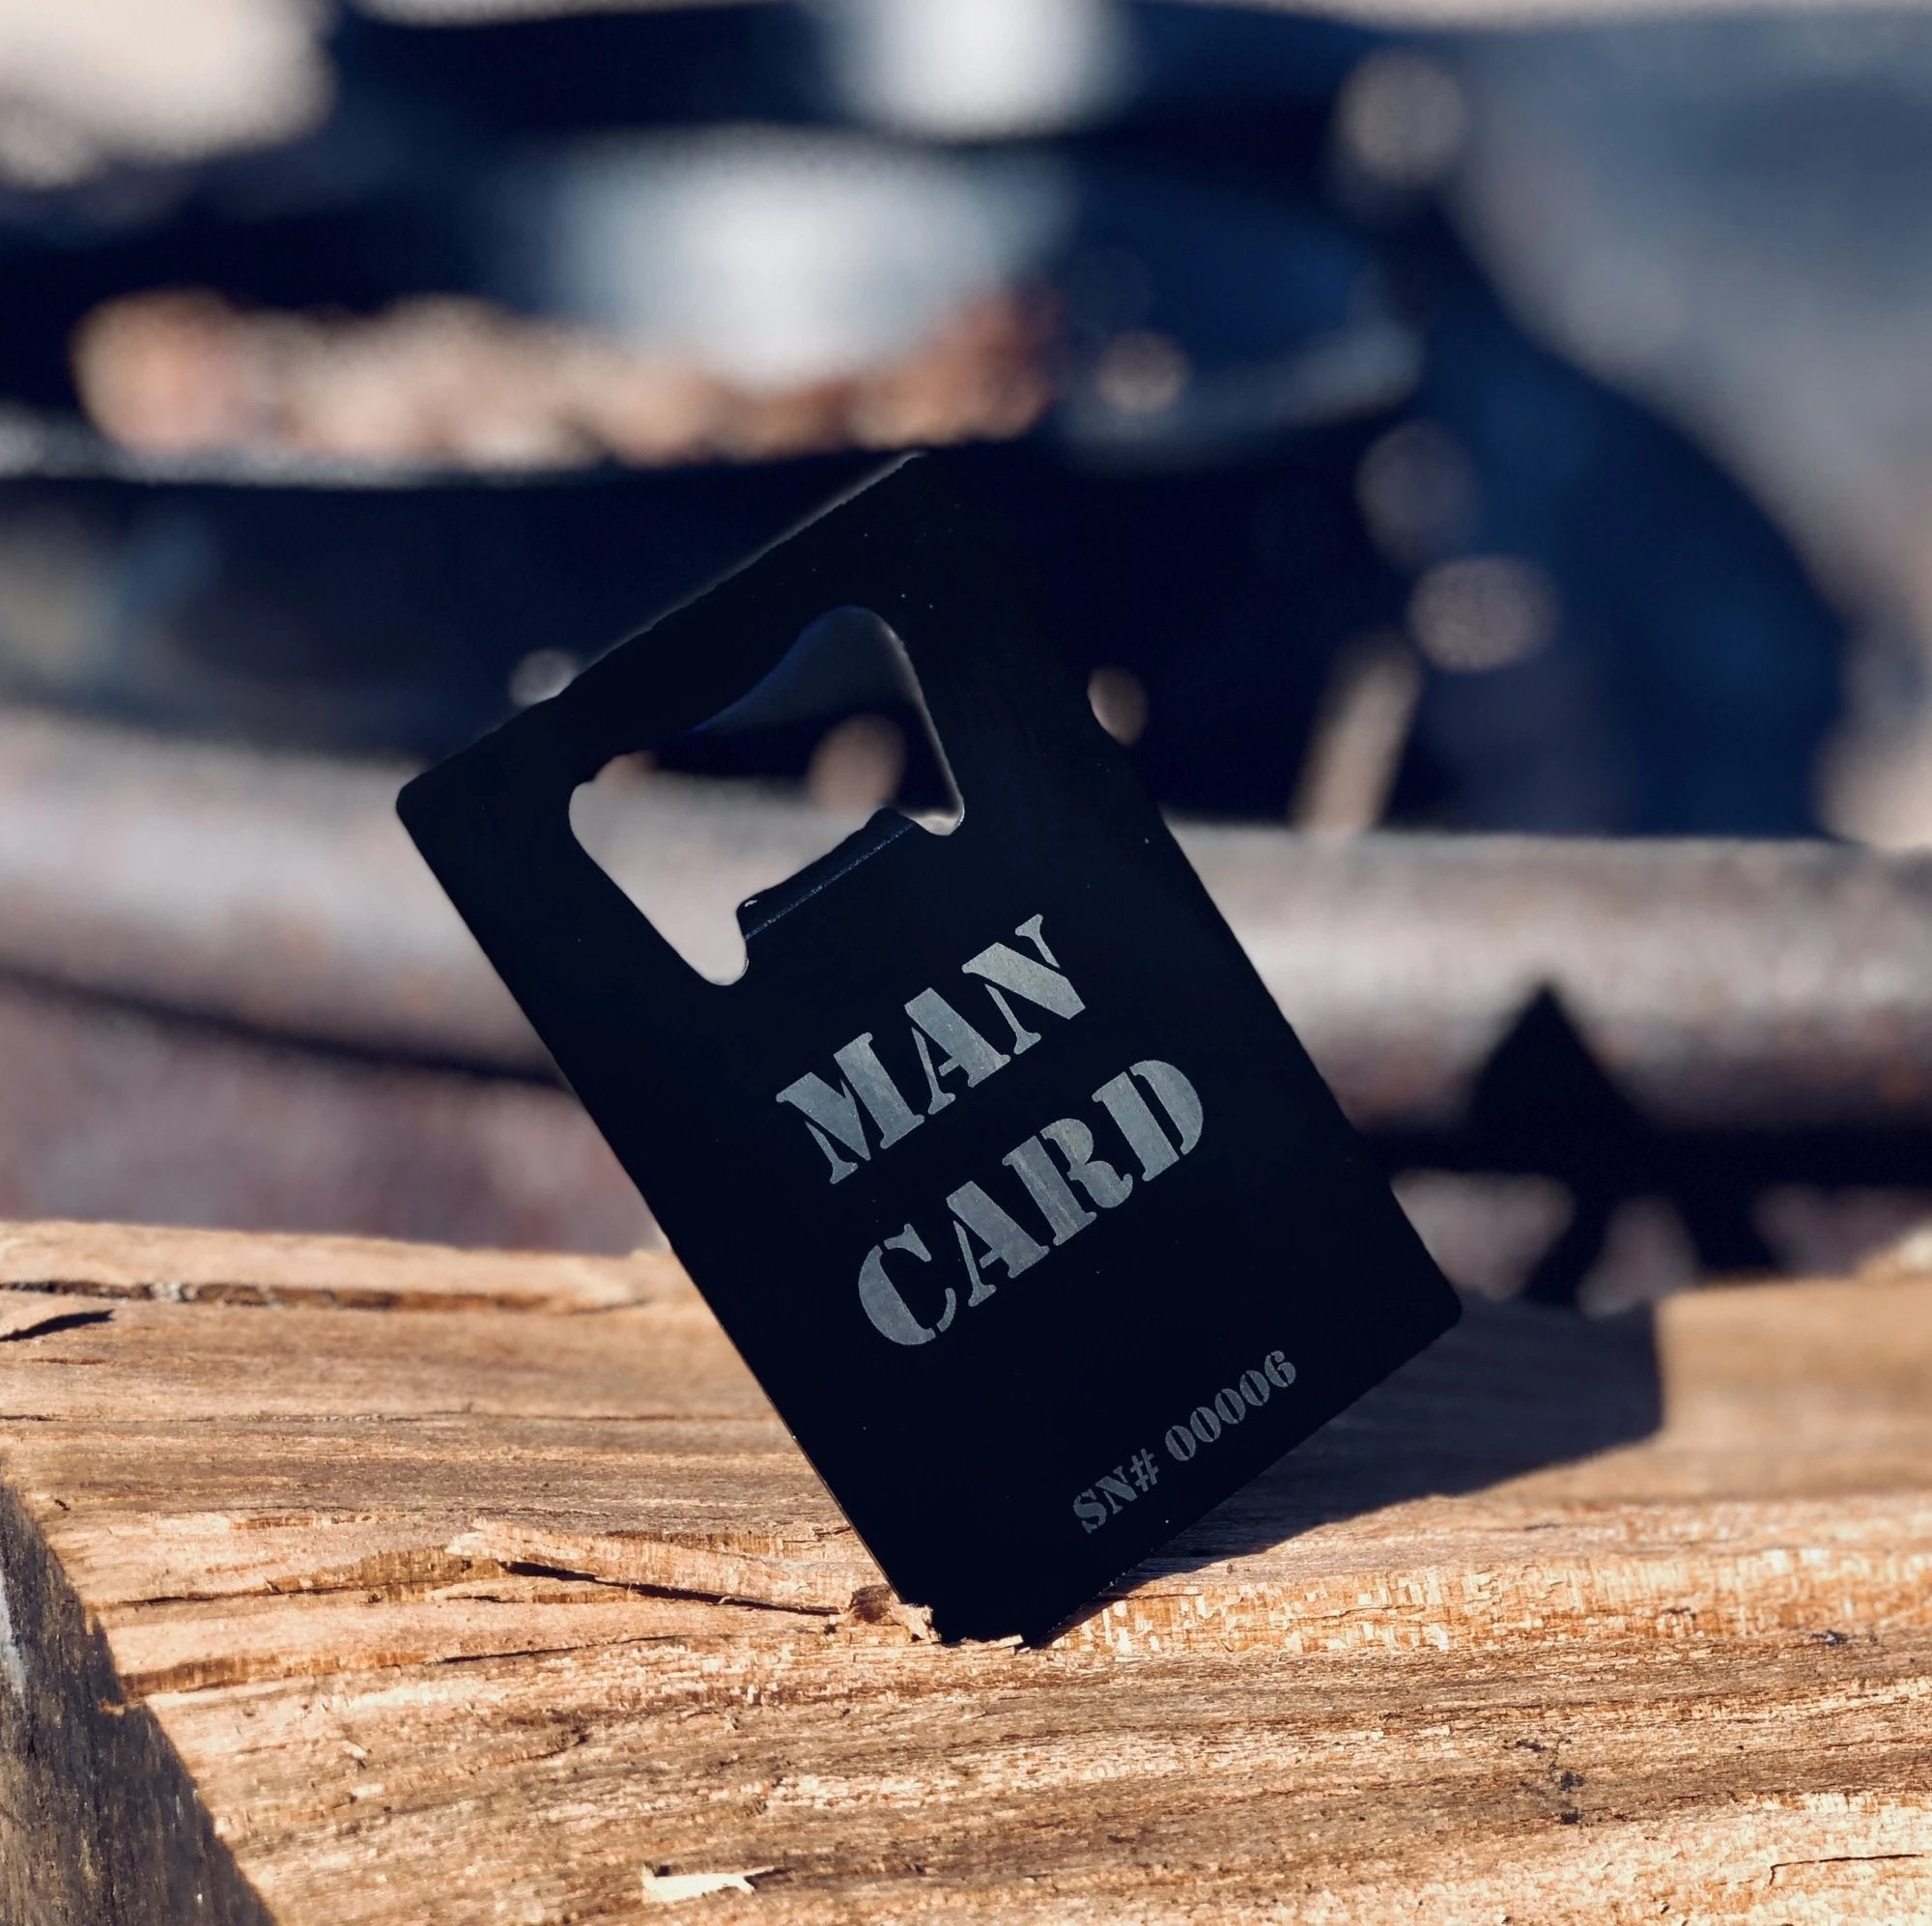 Wallet size MAN CARD beer bottle opener.